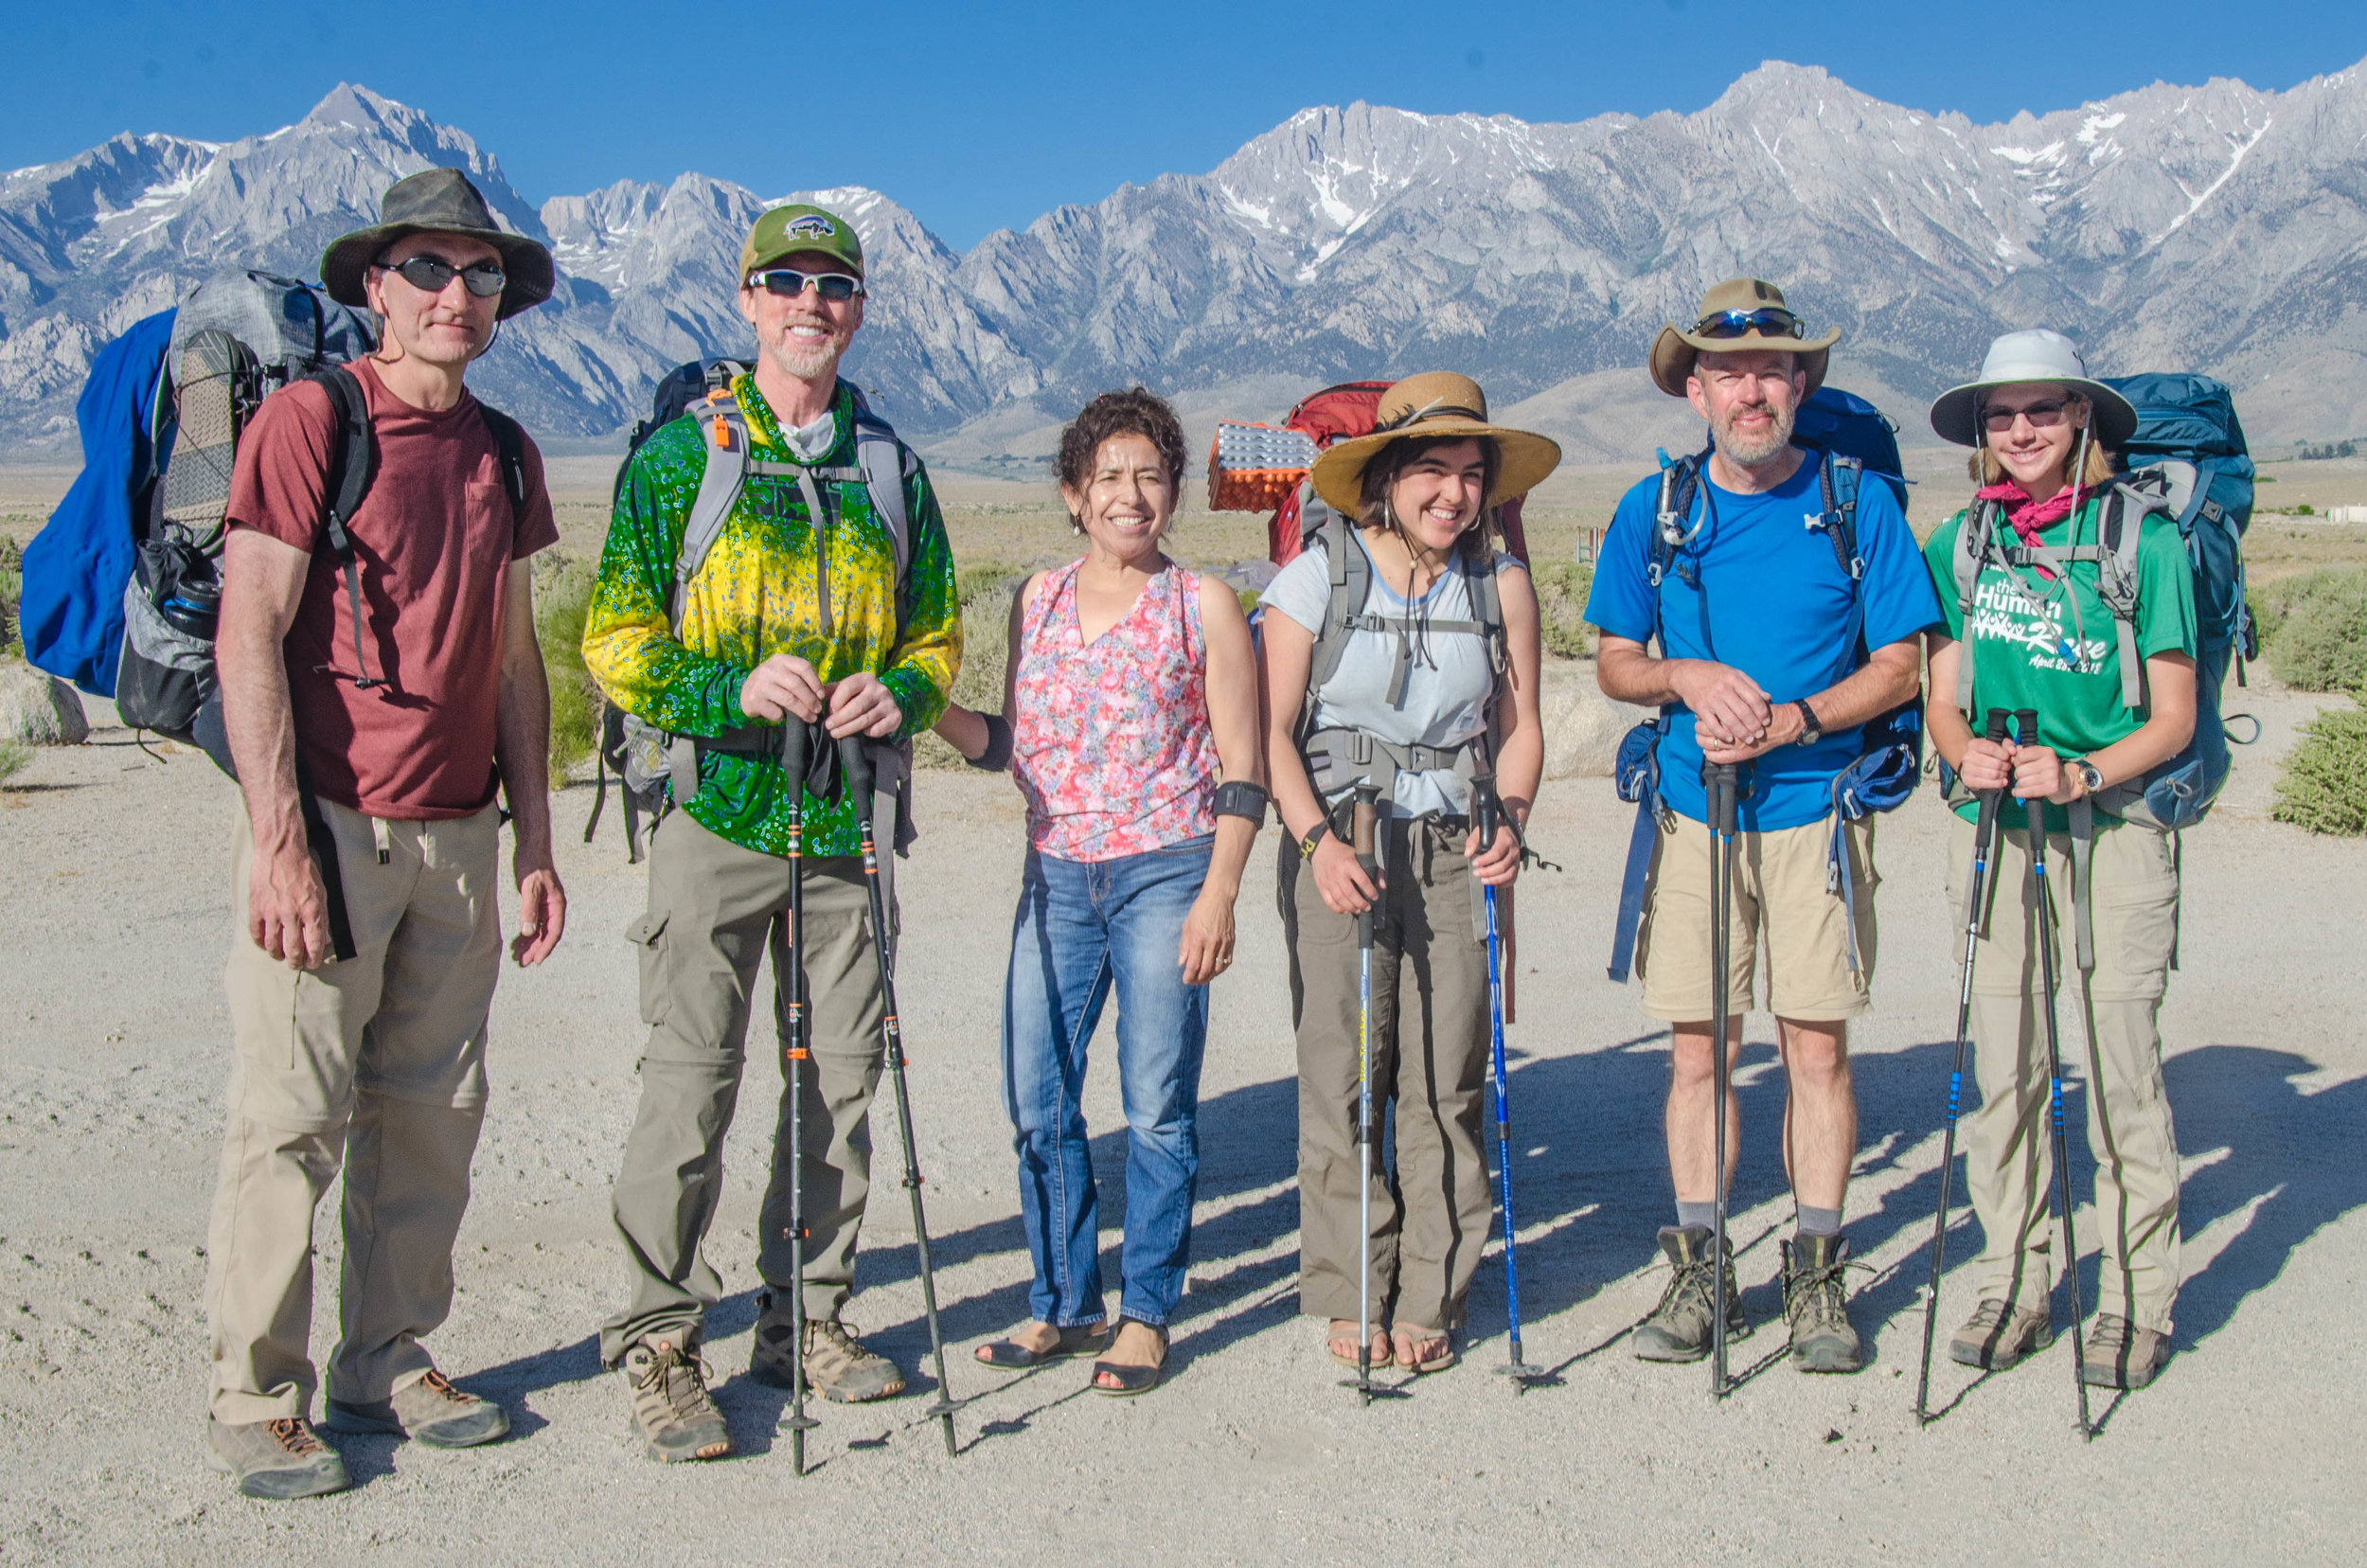 Northbound JMT hikers: Mike,Michael, Erika, Jeffery, and Rachel